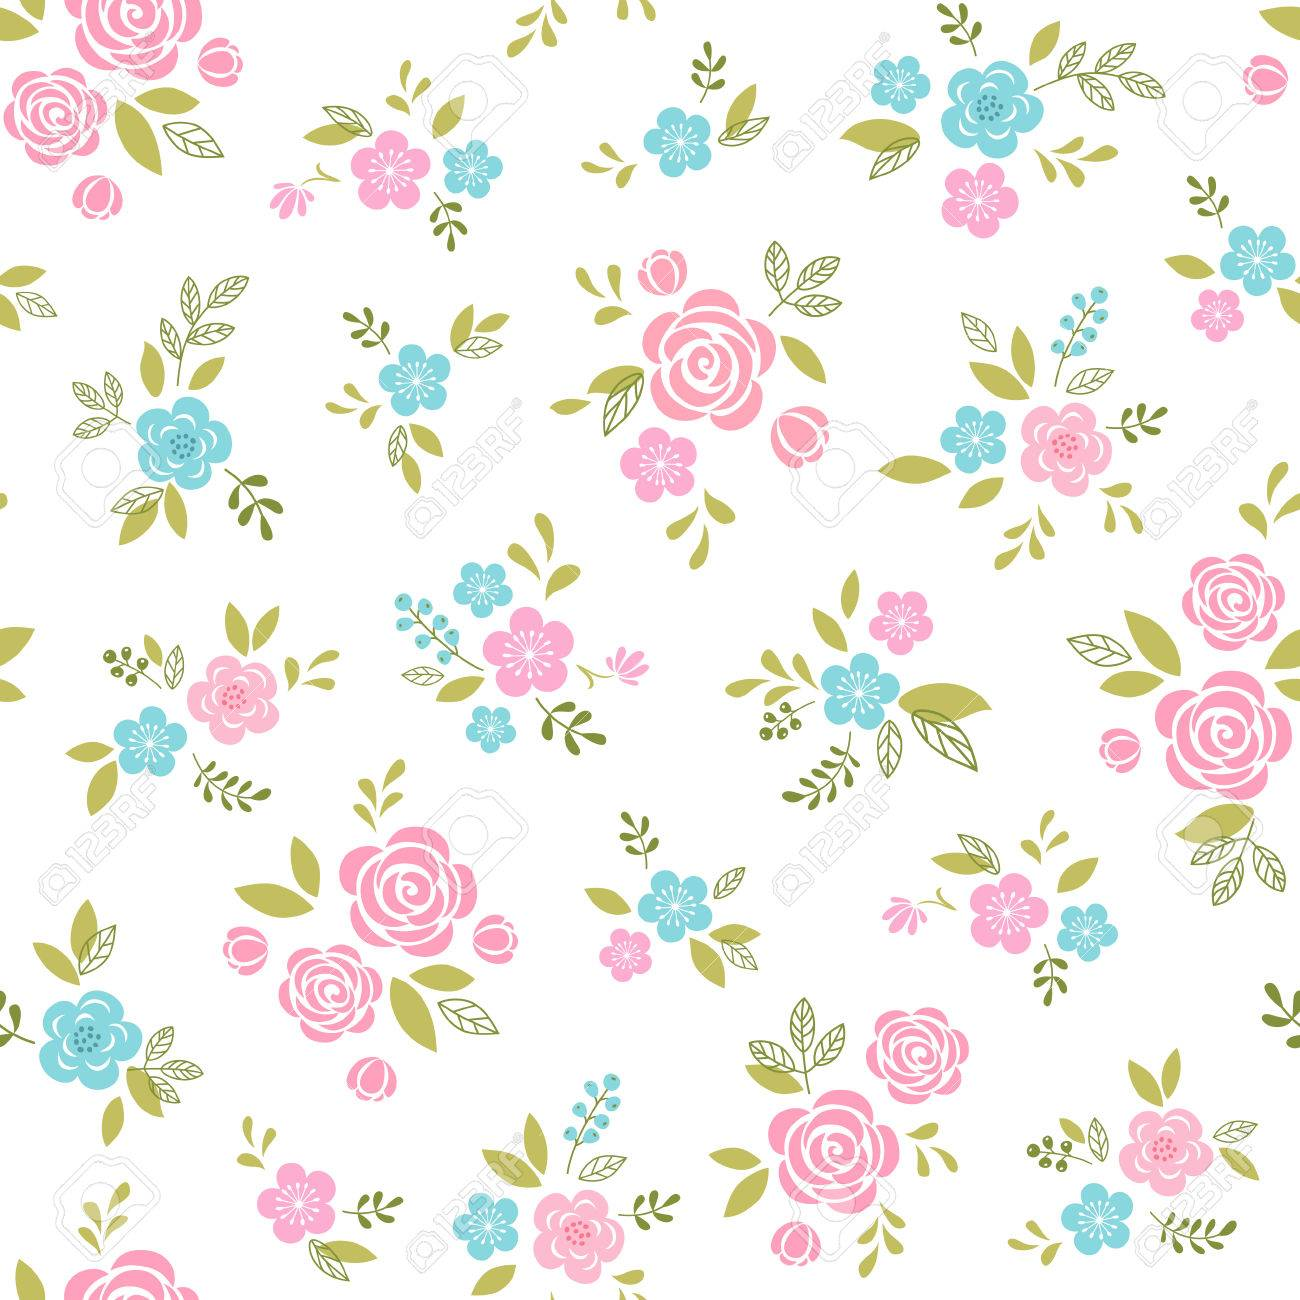 Floral pattern with pink and blue flowers on white background. - 36753505